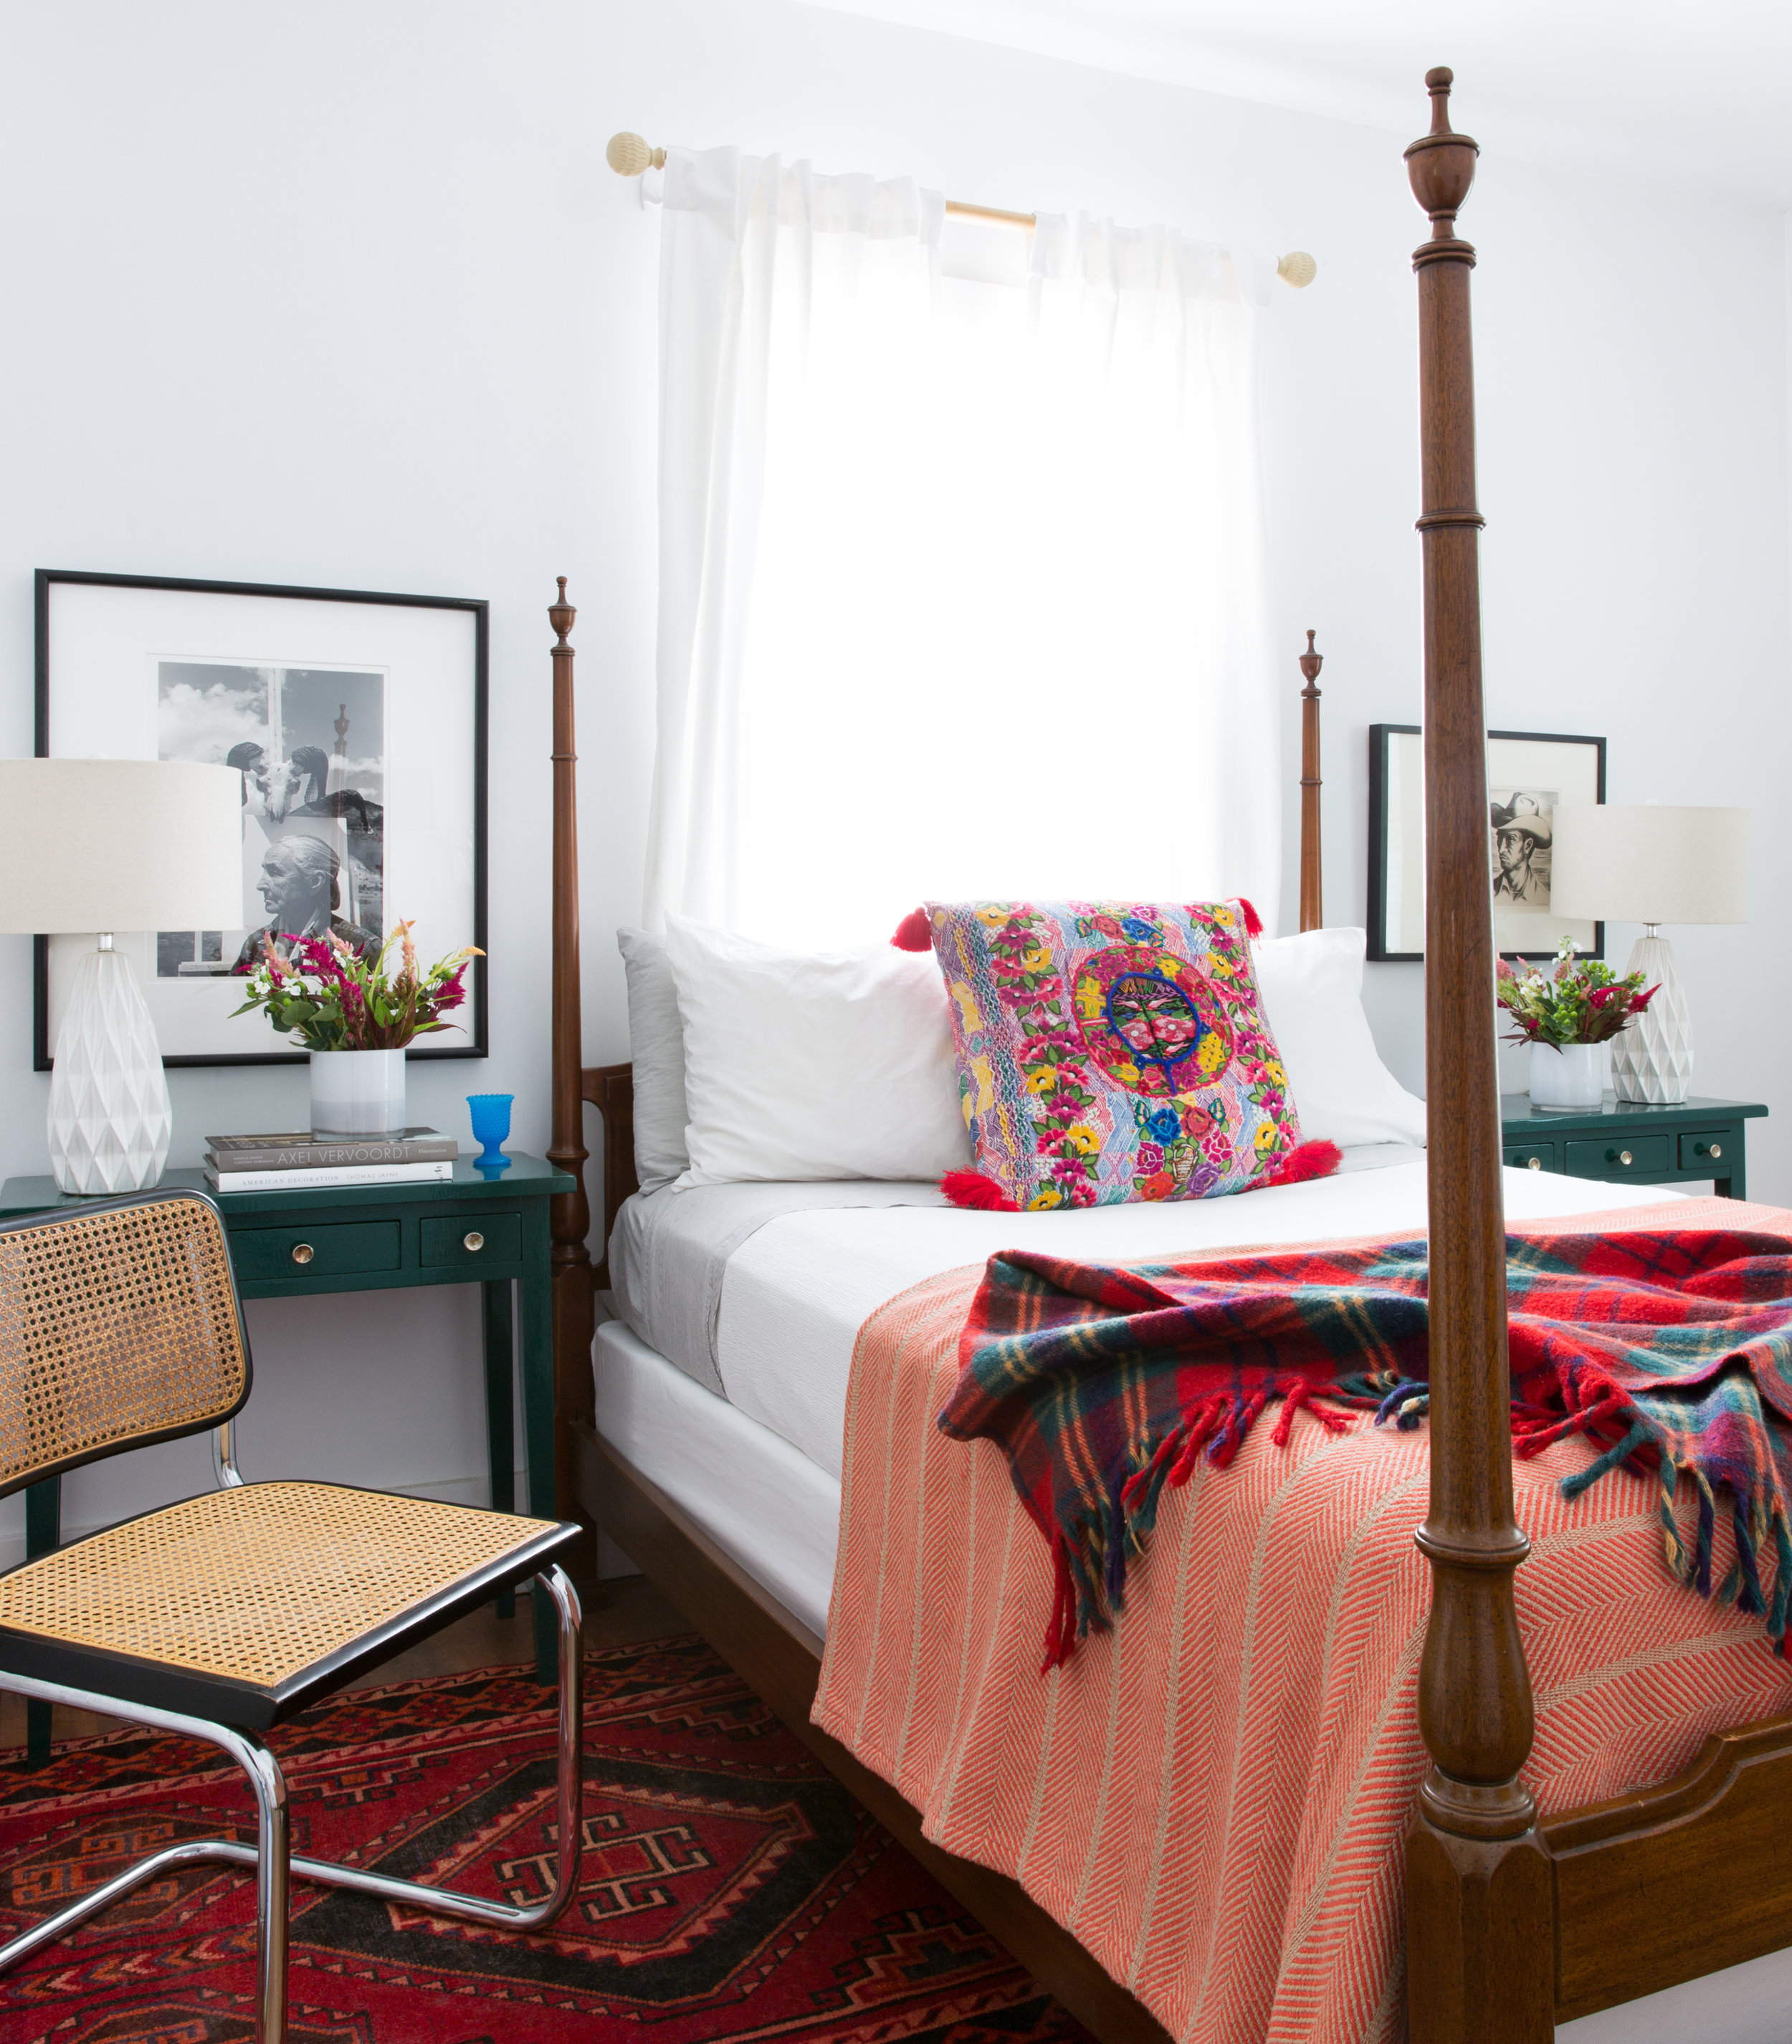 Avery Cox Design Austin Texas East Side Bungalow eclectic bedroom design with mid century modern chair, Photograph of Georgia O'Keefe, custom lacquered side tables, and an antique four poster bed.